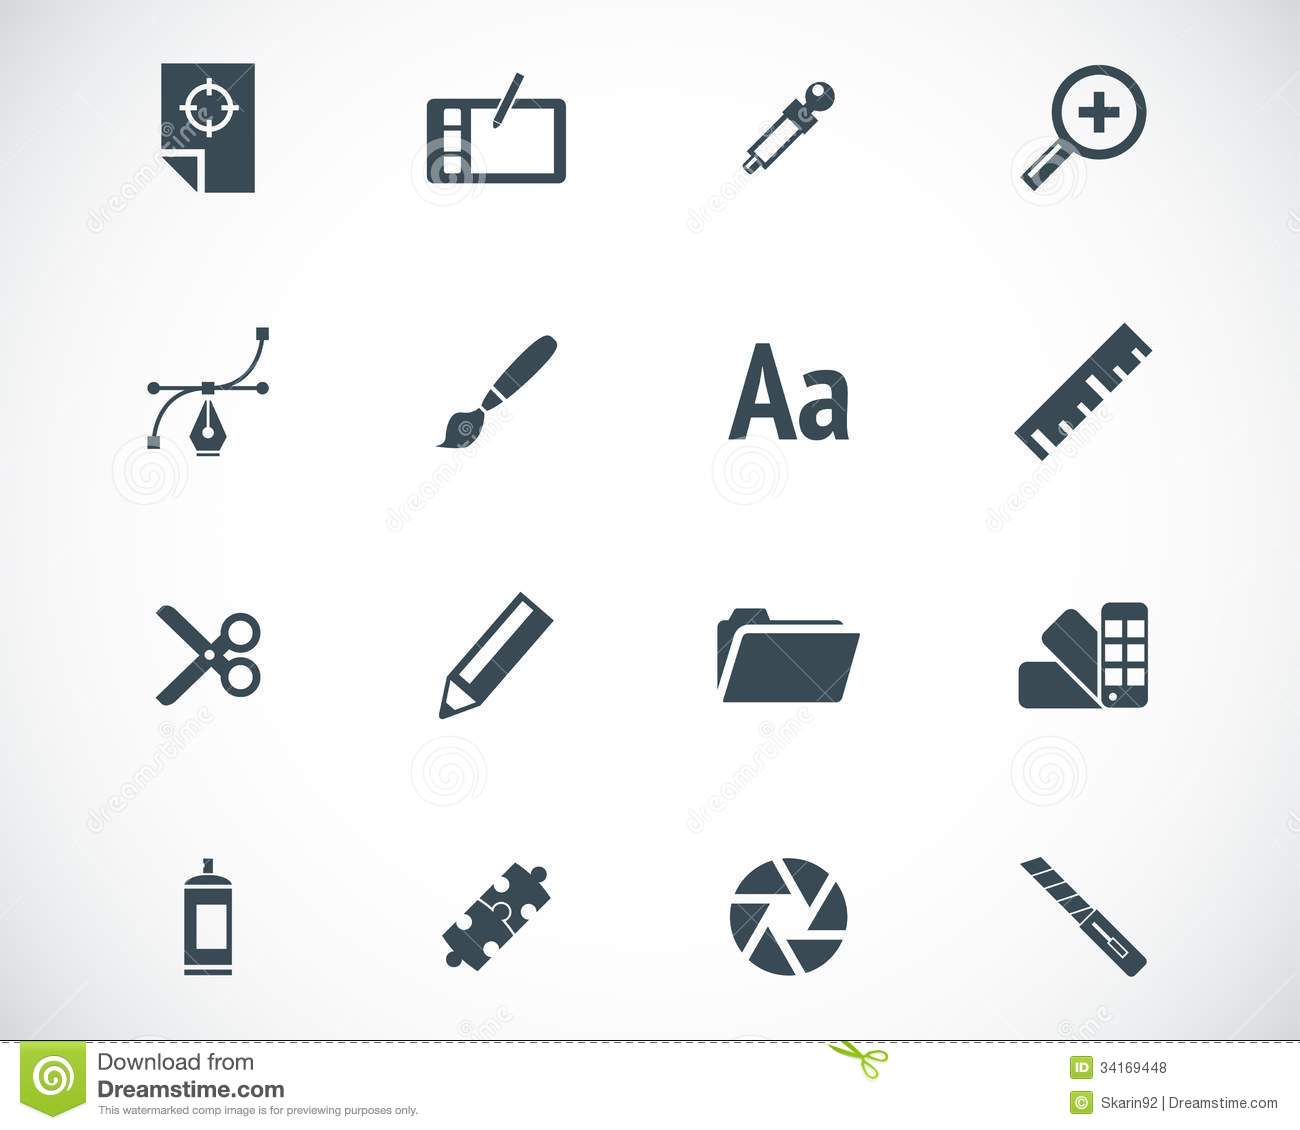 vector black graphic design icons stock illustration